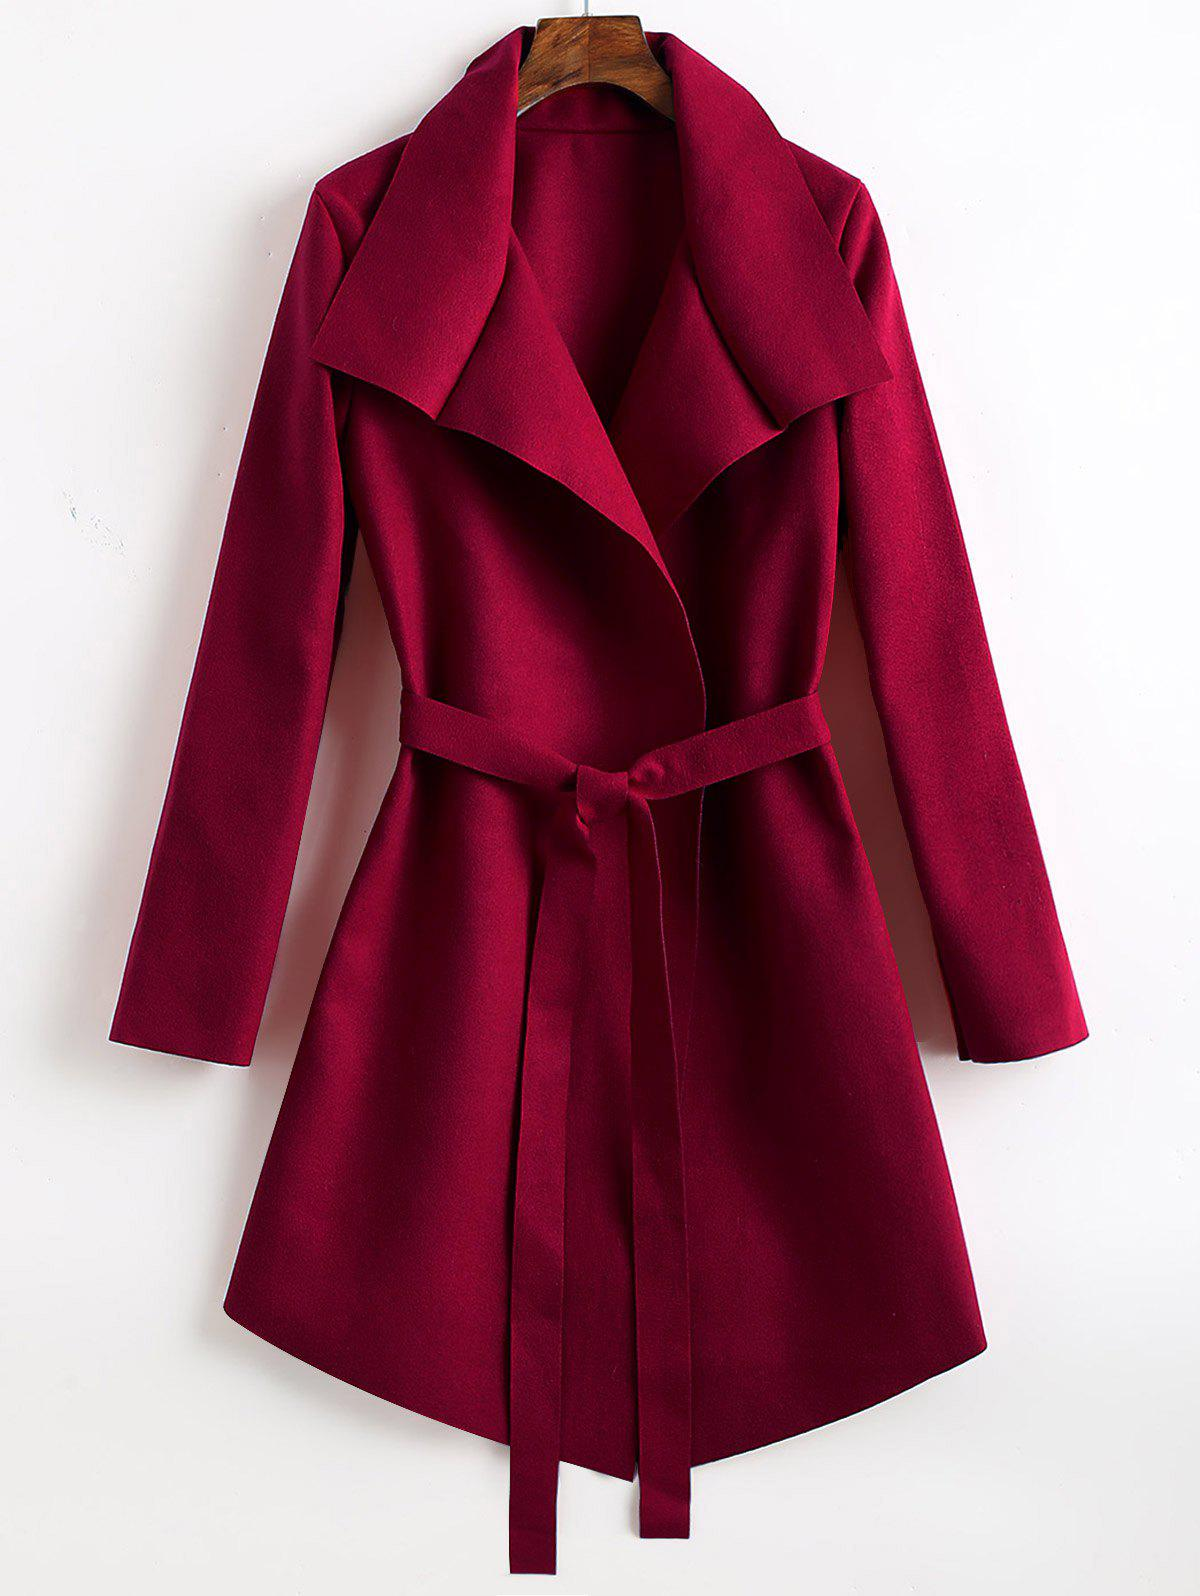 Belted Wool Blend Asymmetrical Coat - WINE RED S